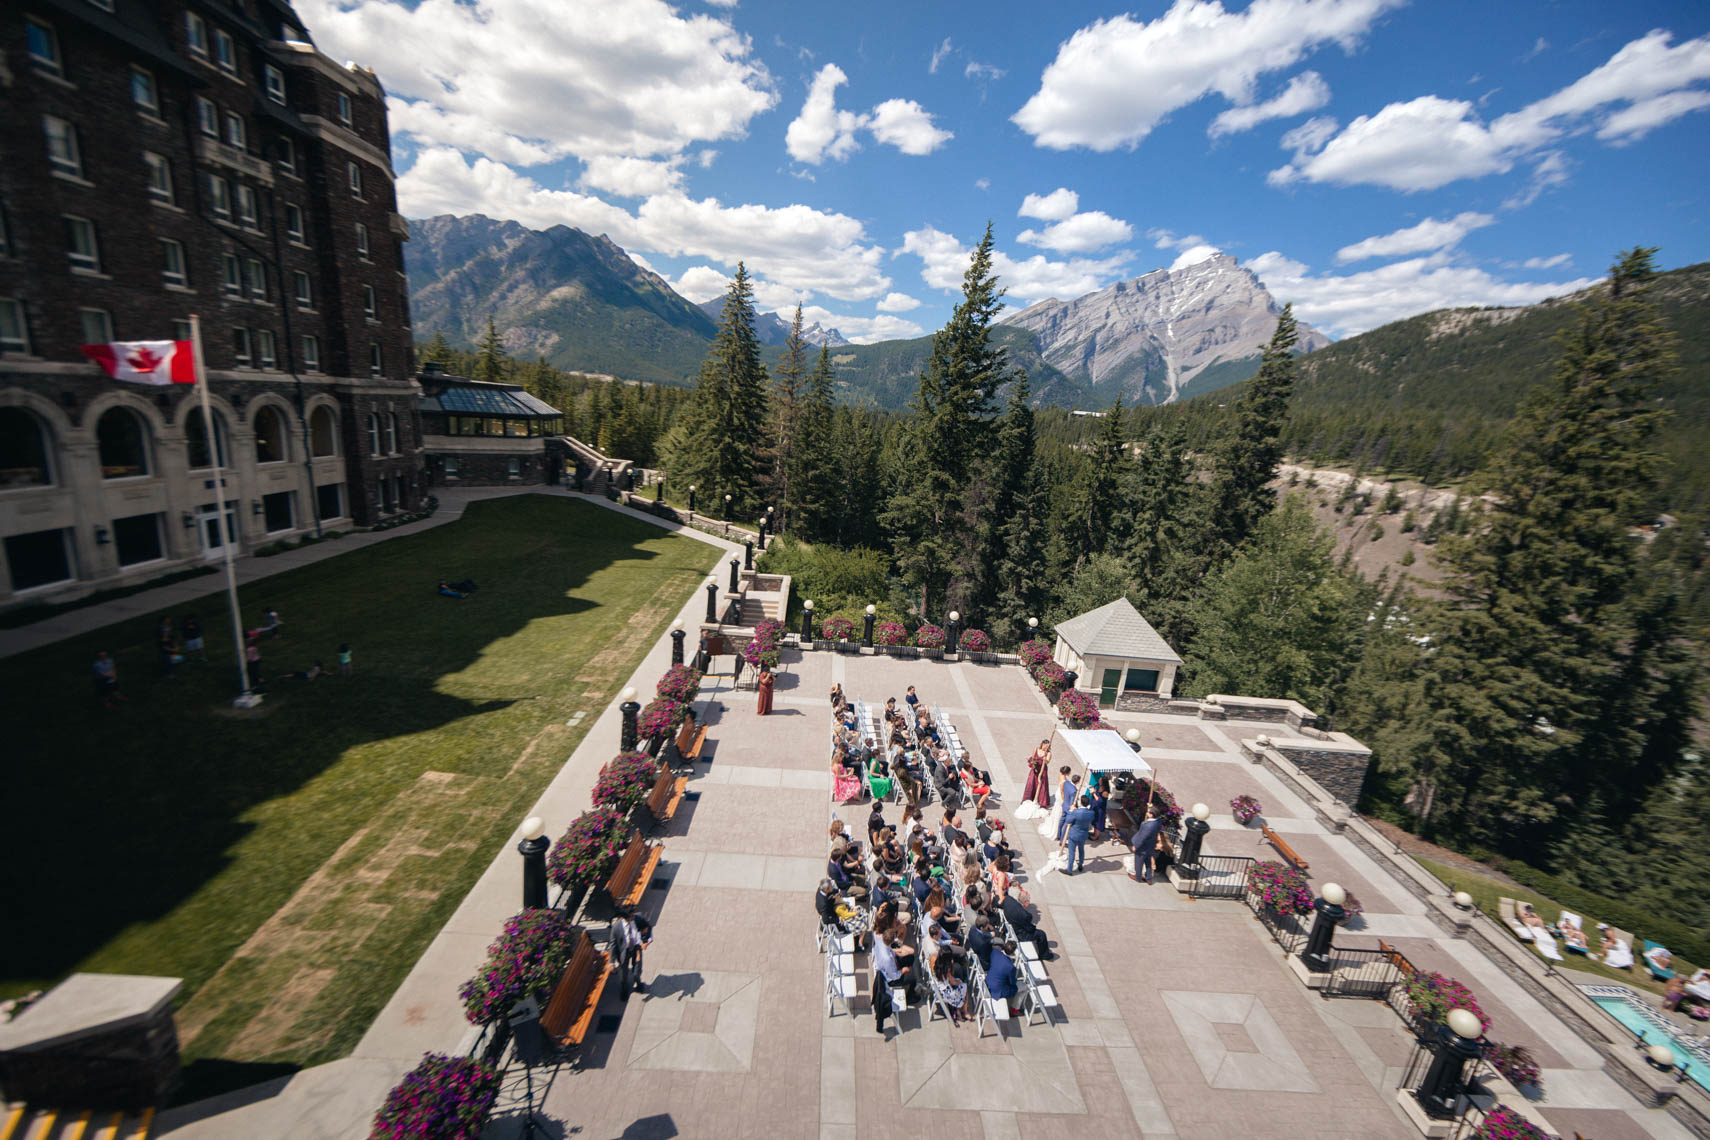 View of wedding ceremony from above at Banff Springs Hotel in Canada